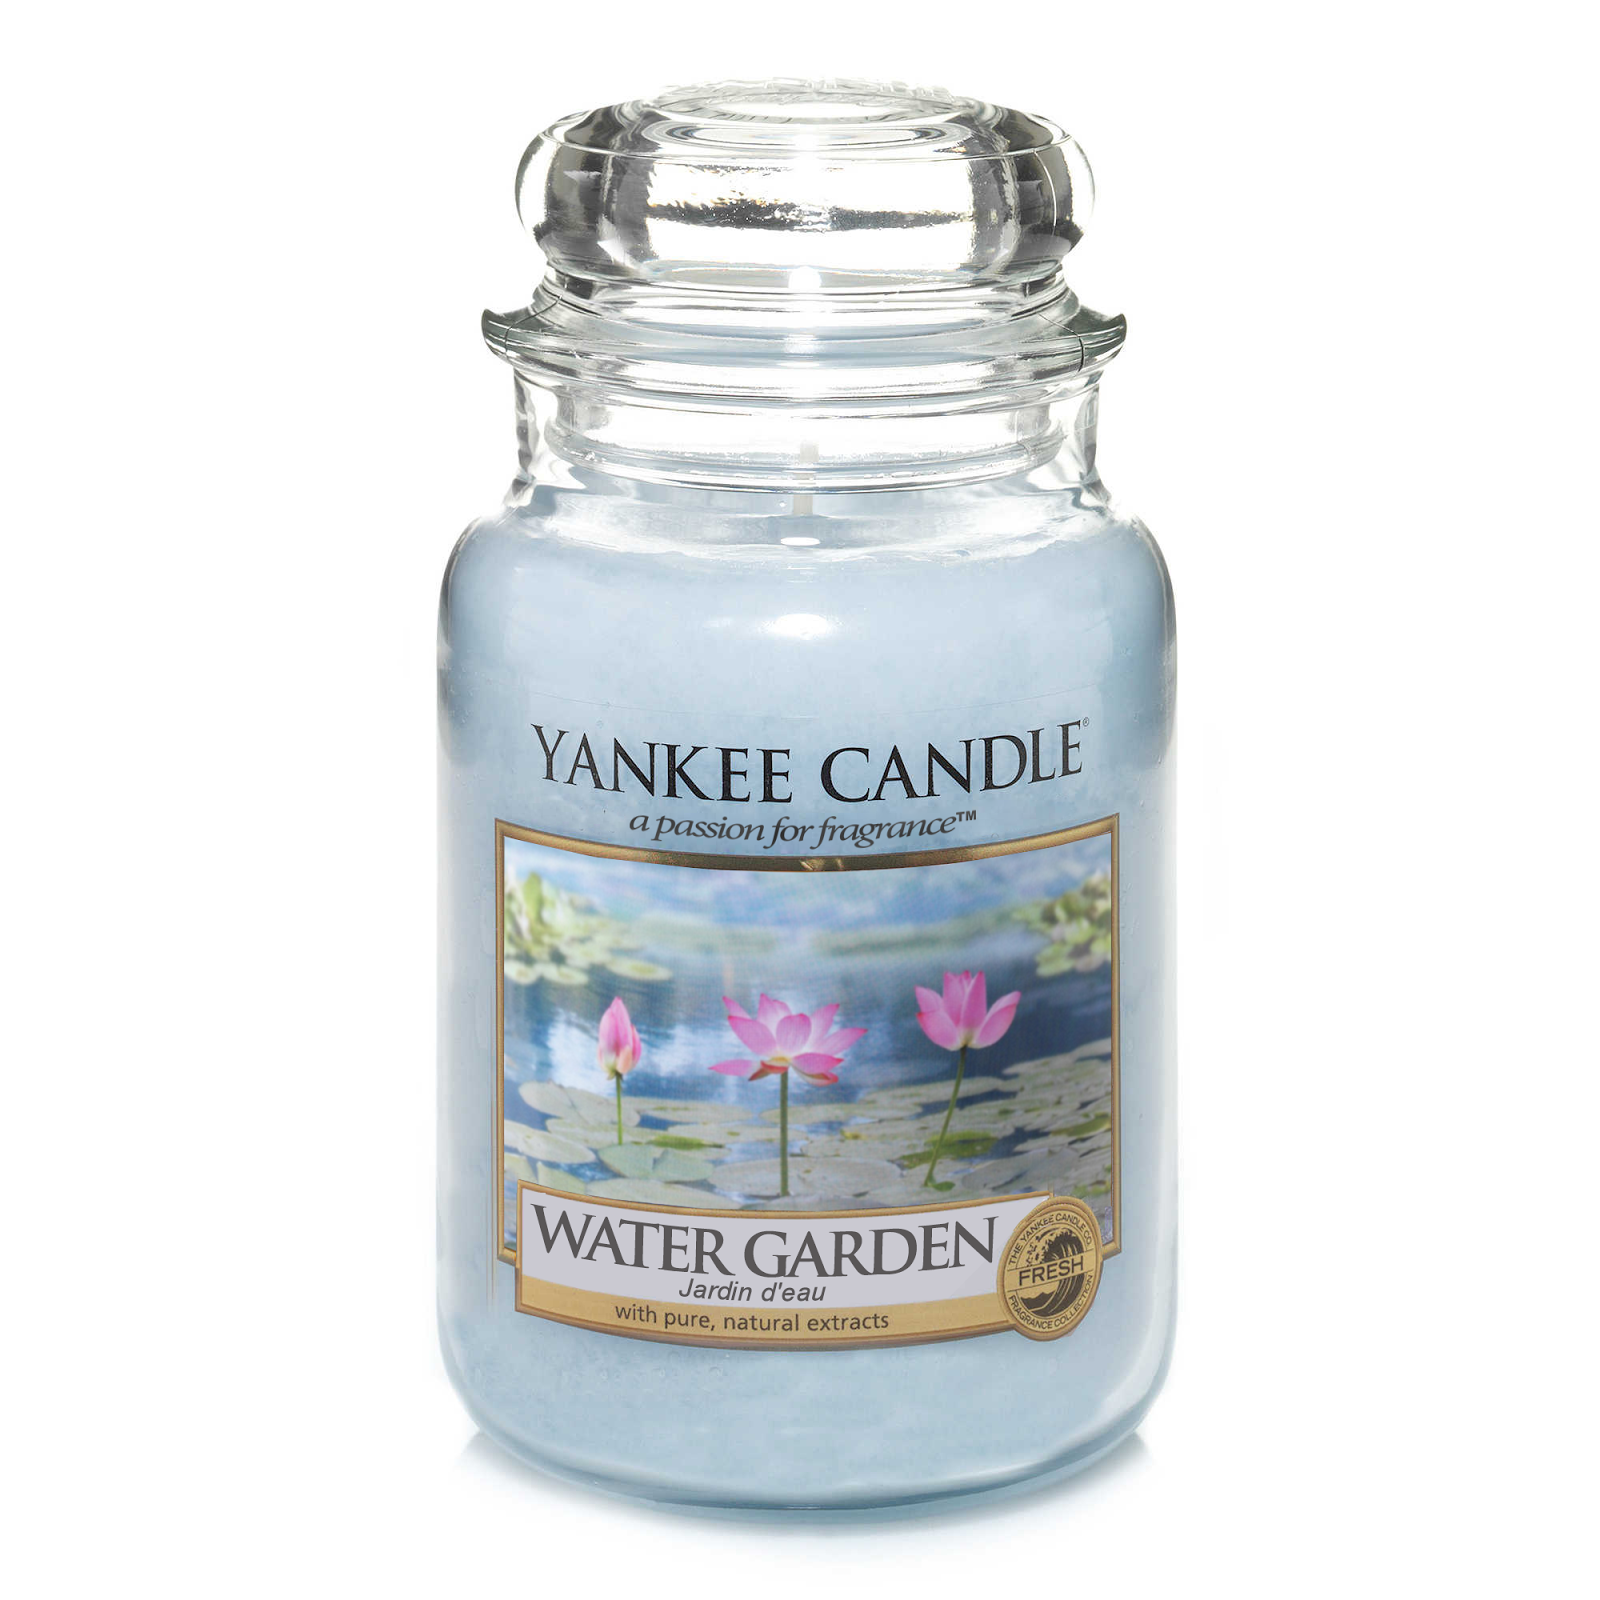 Its All About Yankee Candle YANKEE CANDLE SPECIAL